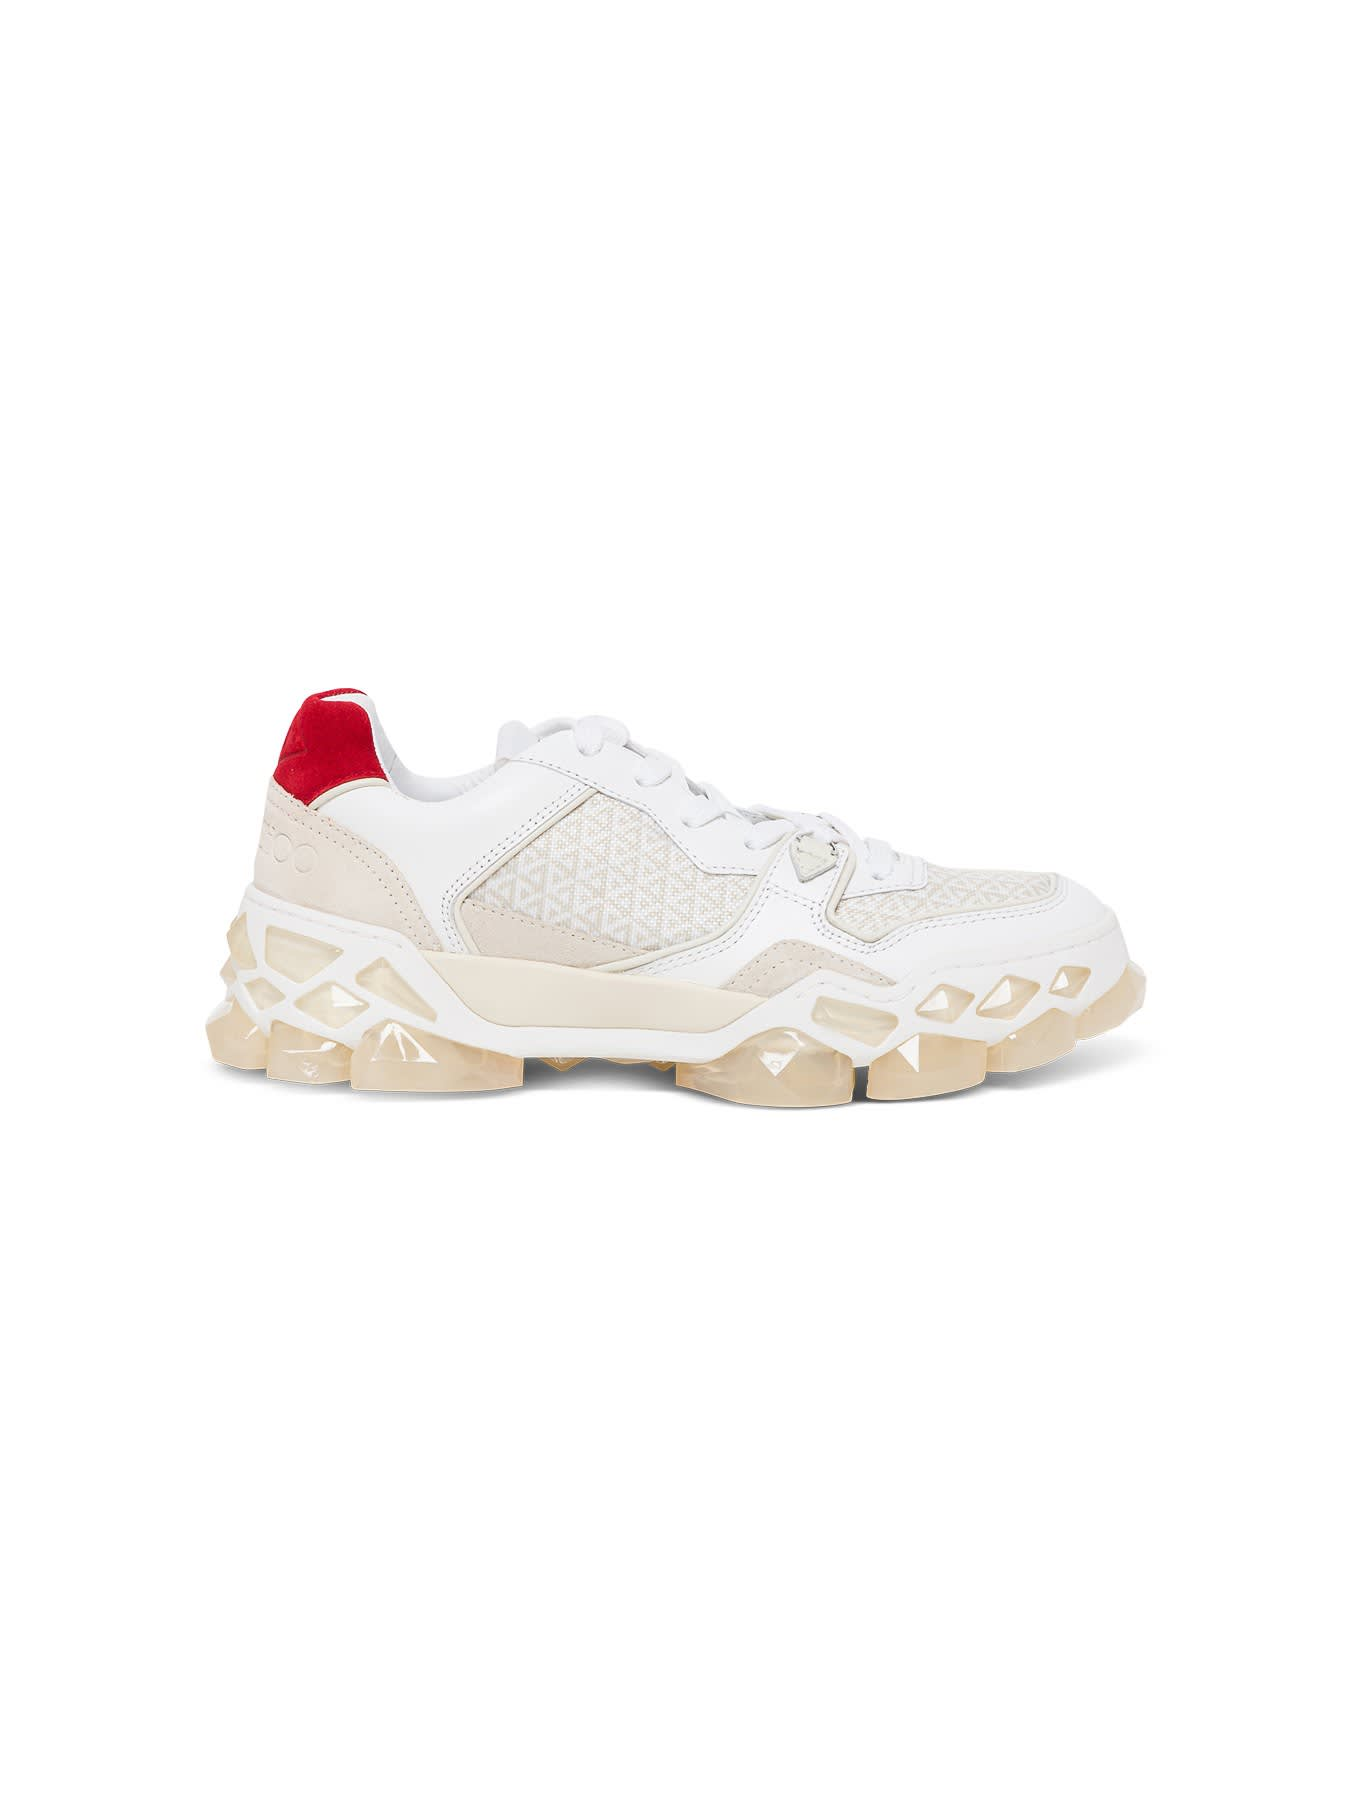 JIMMY CHOO SNEAKER DIAMOND X TRAINER IN CALF LEATHER, CROSTA SUEDE AND PRINTED NYLON